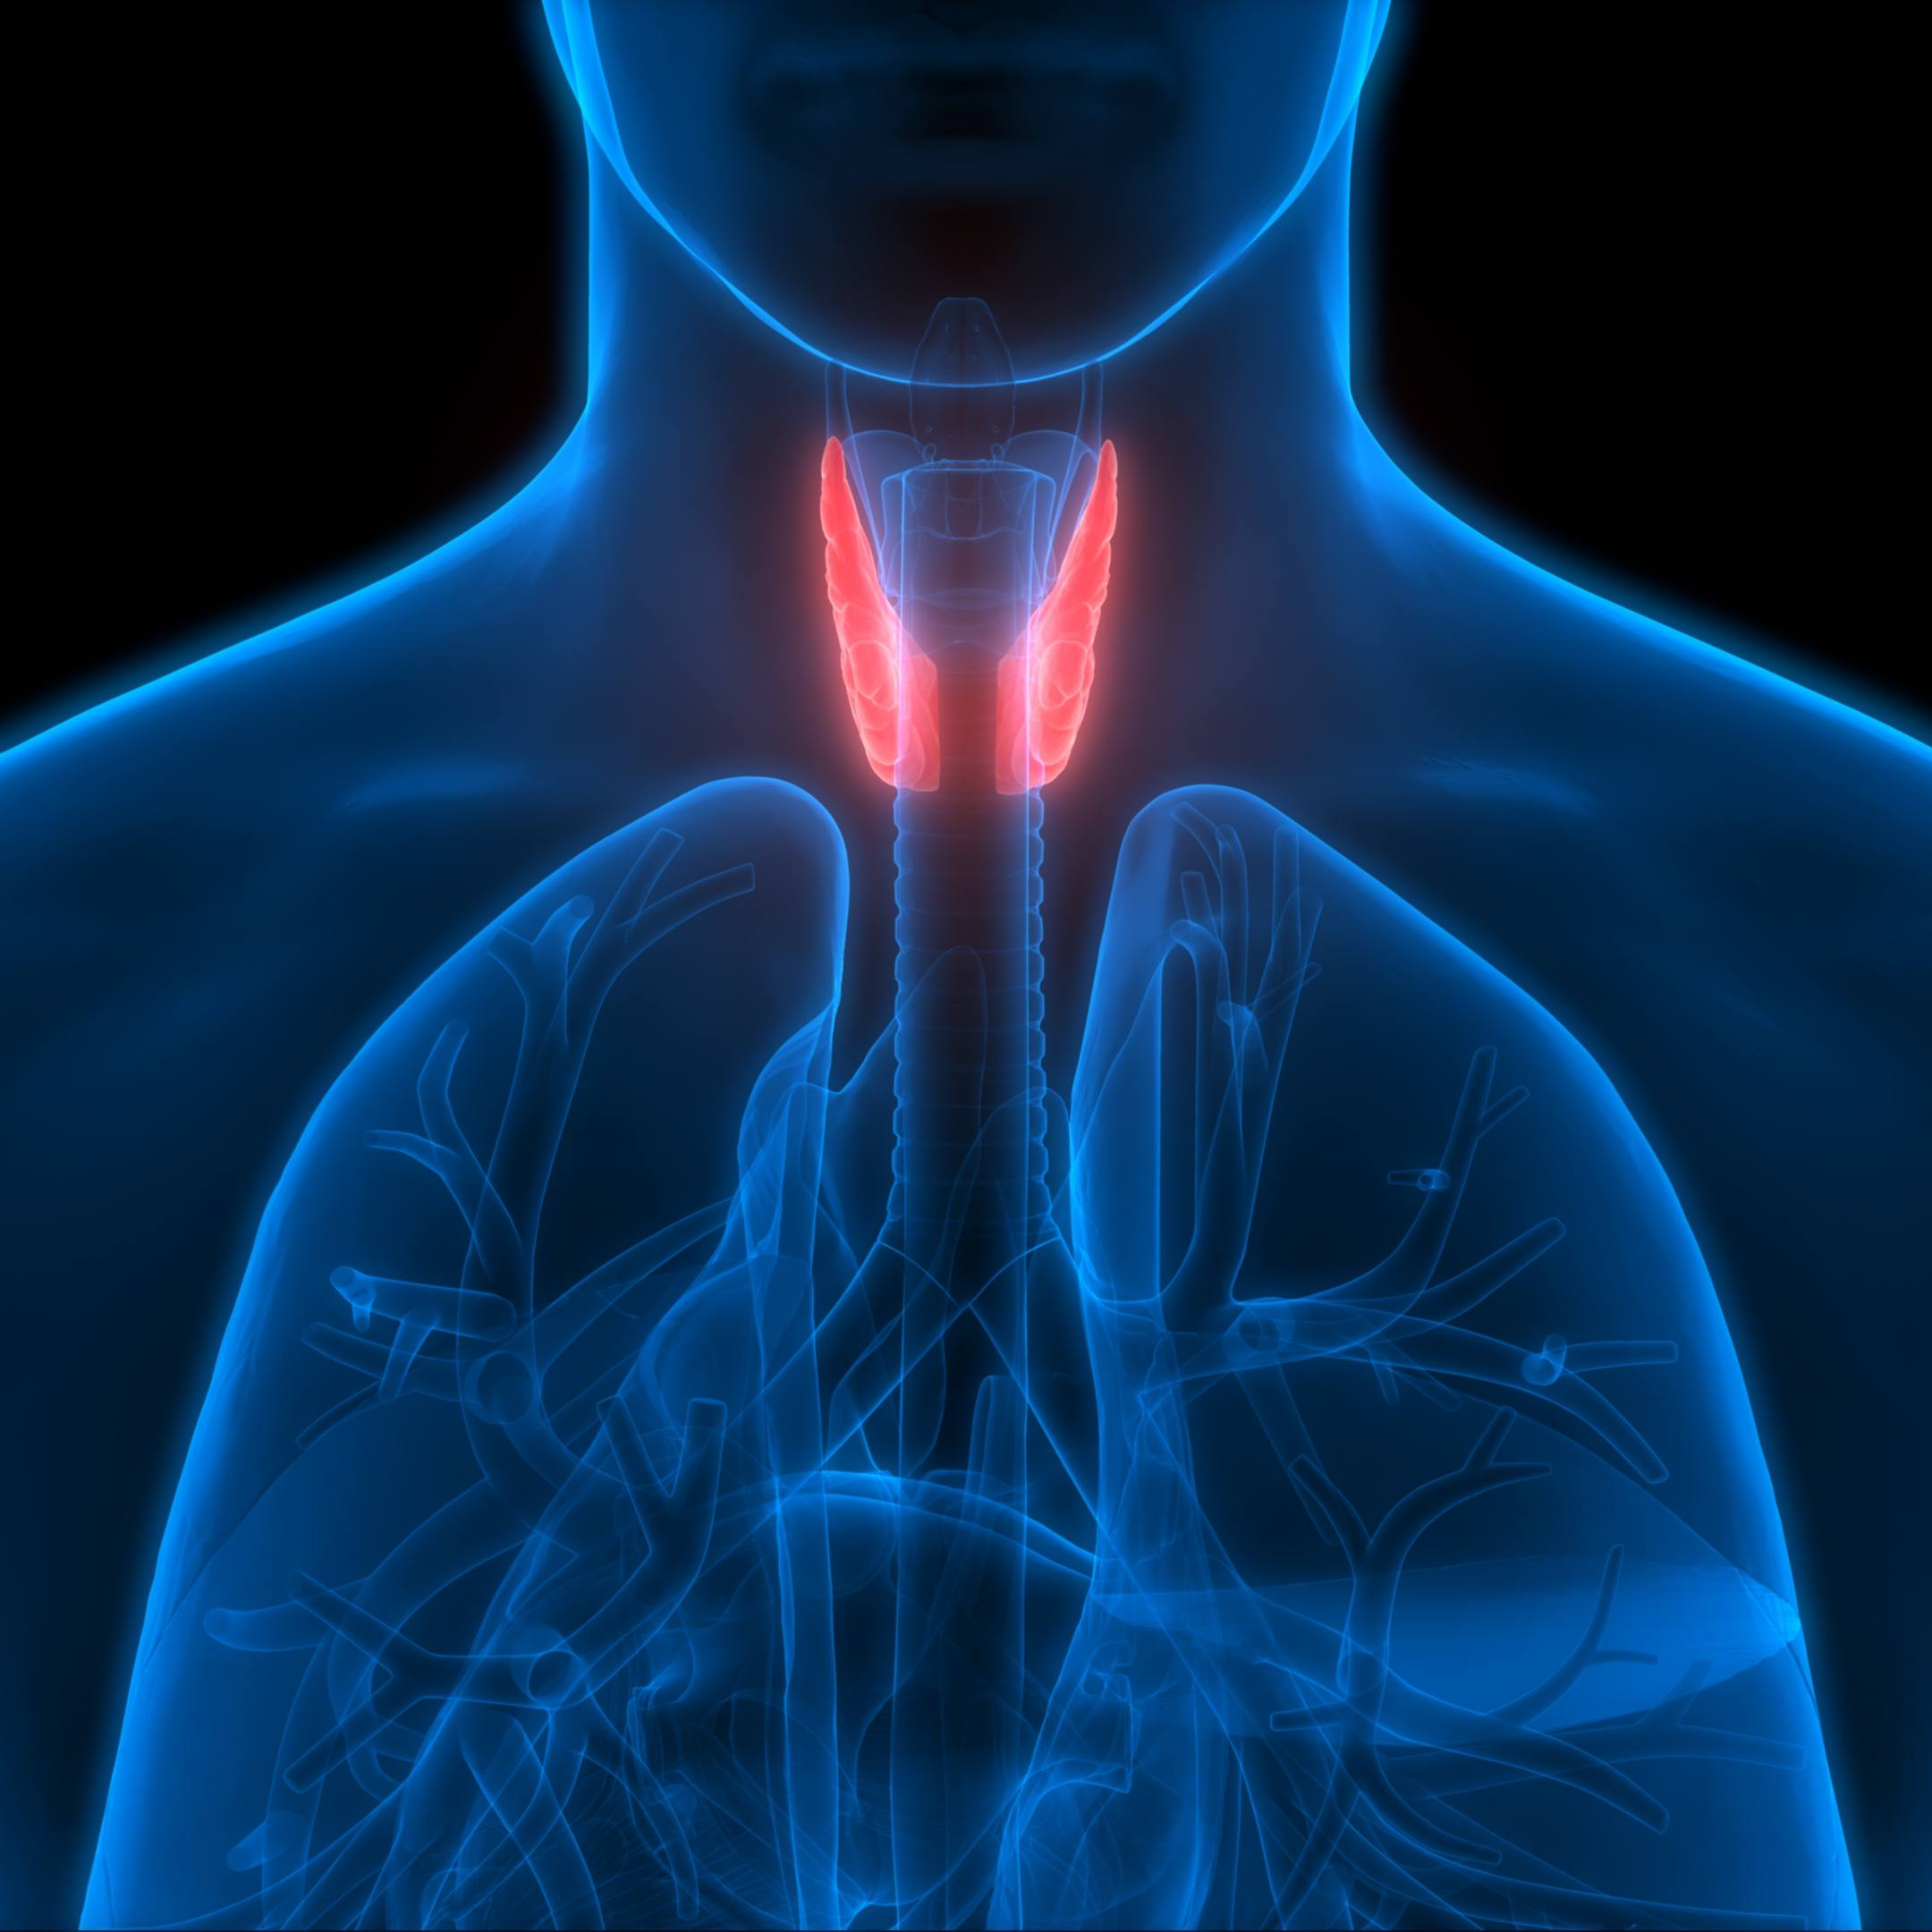 3D anatomy image with the thyroid gland highlighted